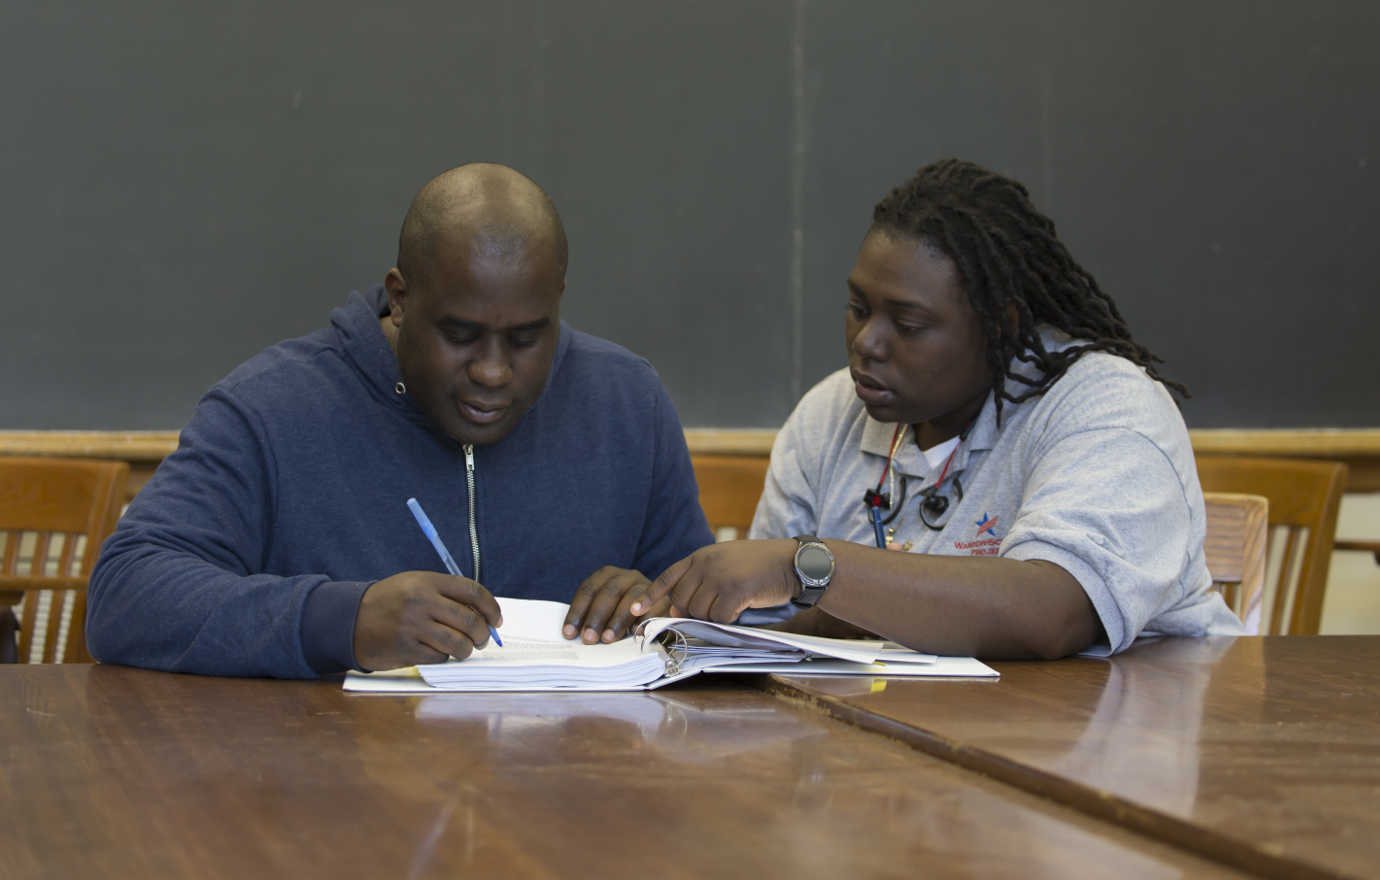 In the afternoons, Warrior-Scholar Project participants take part in writing workshops led by university faculty and staff. Image courtesy of the Warrior-Scholar Project.